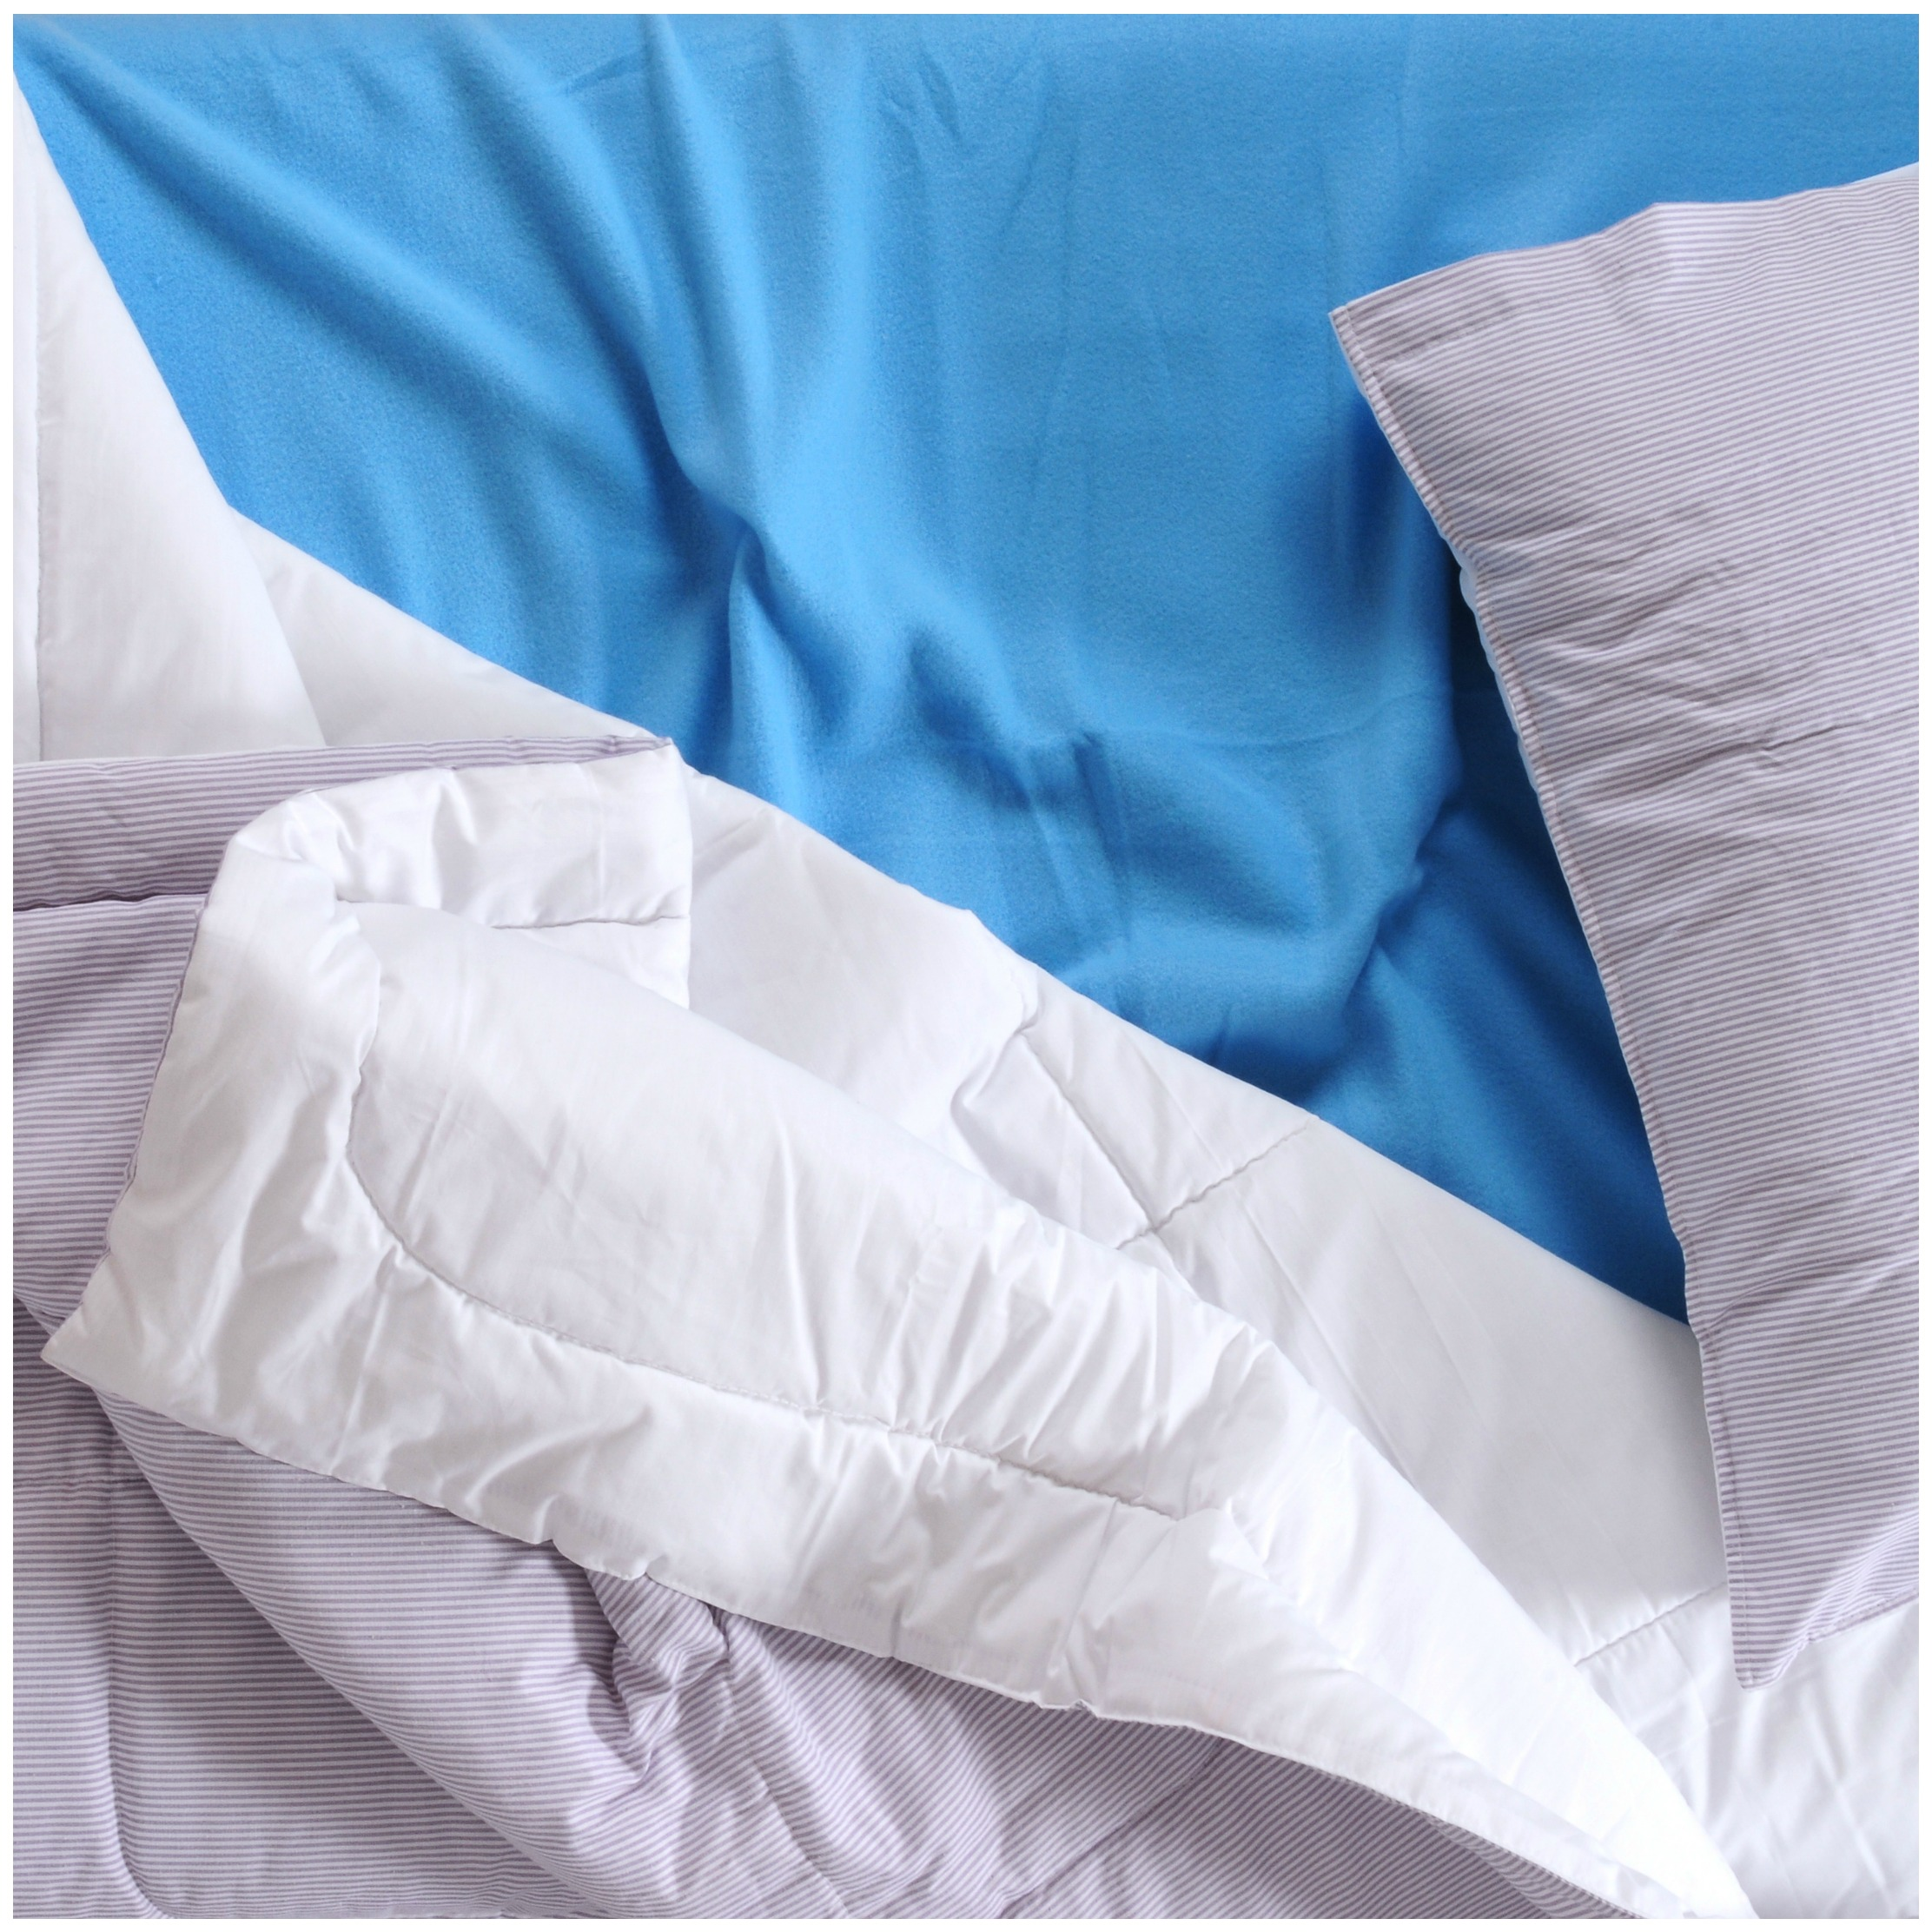 Blue bed sheet covered by a white comforter. Just one way to dial in comfort for healthy sleep as a New Year's resolution.